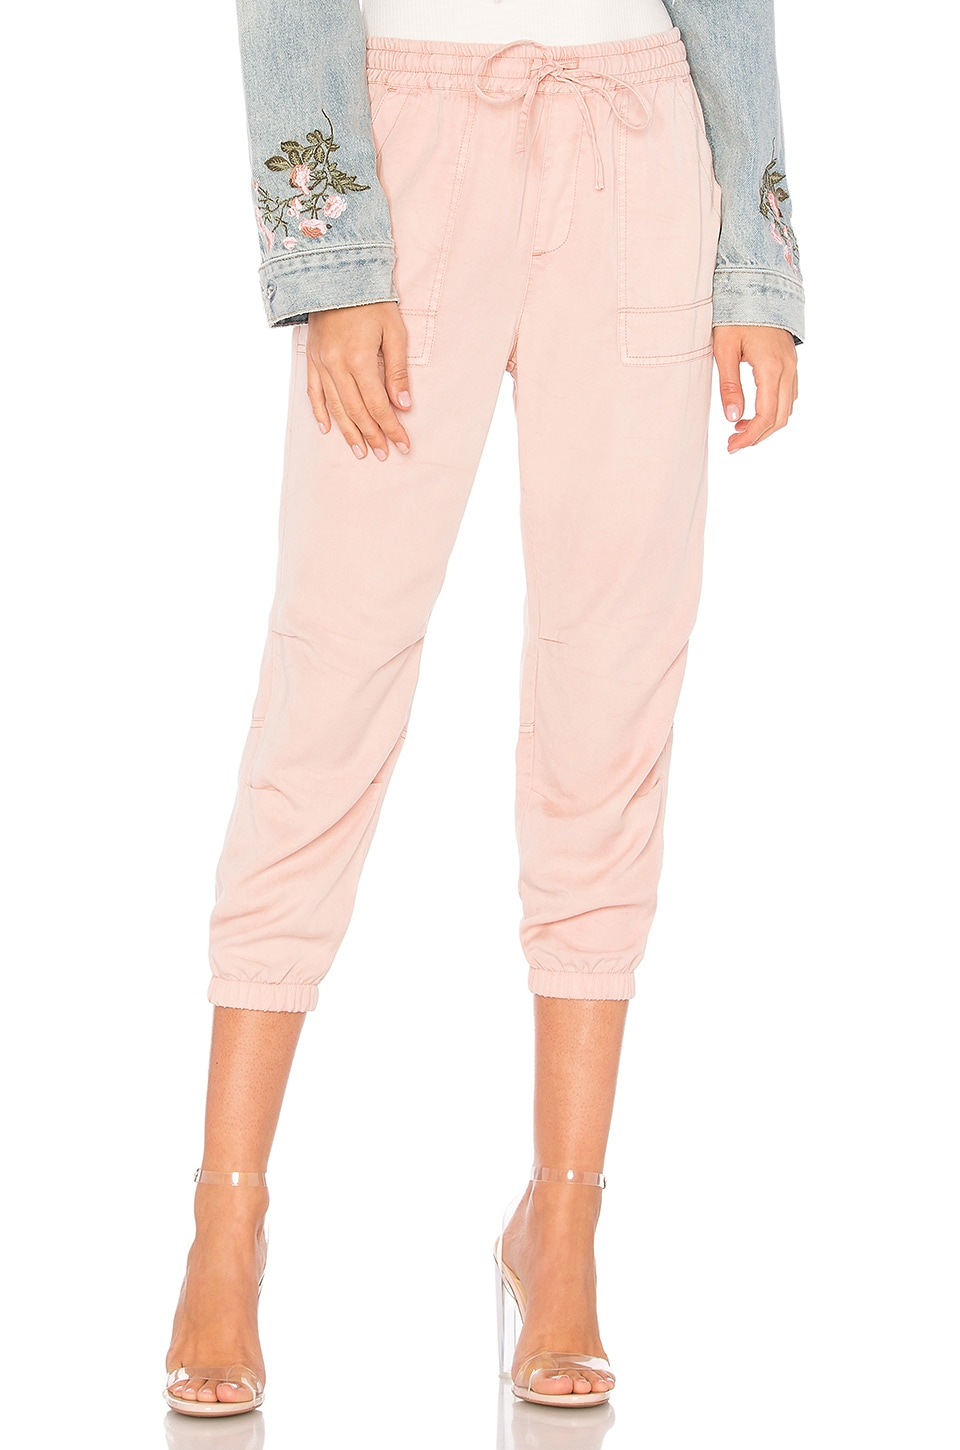 Cotton Candy Pant